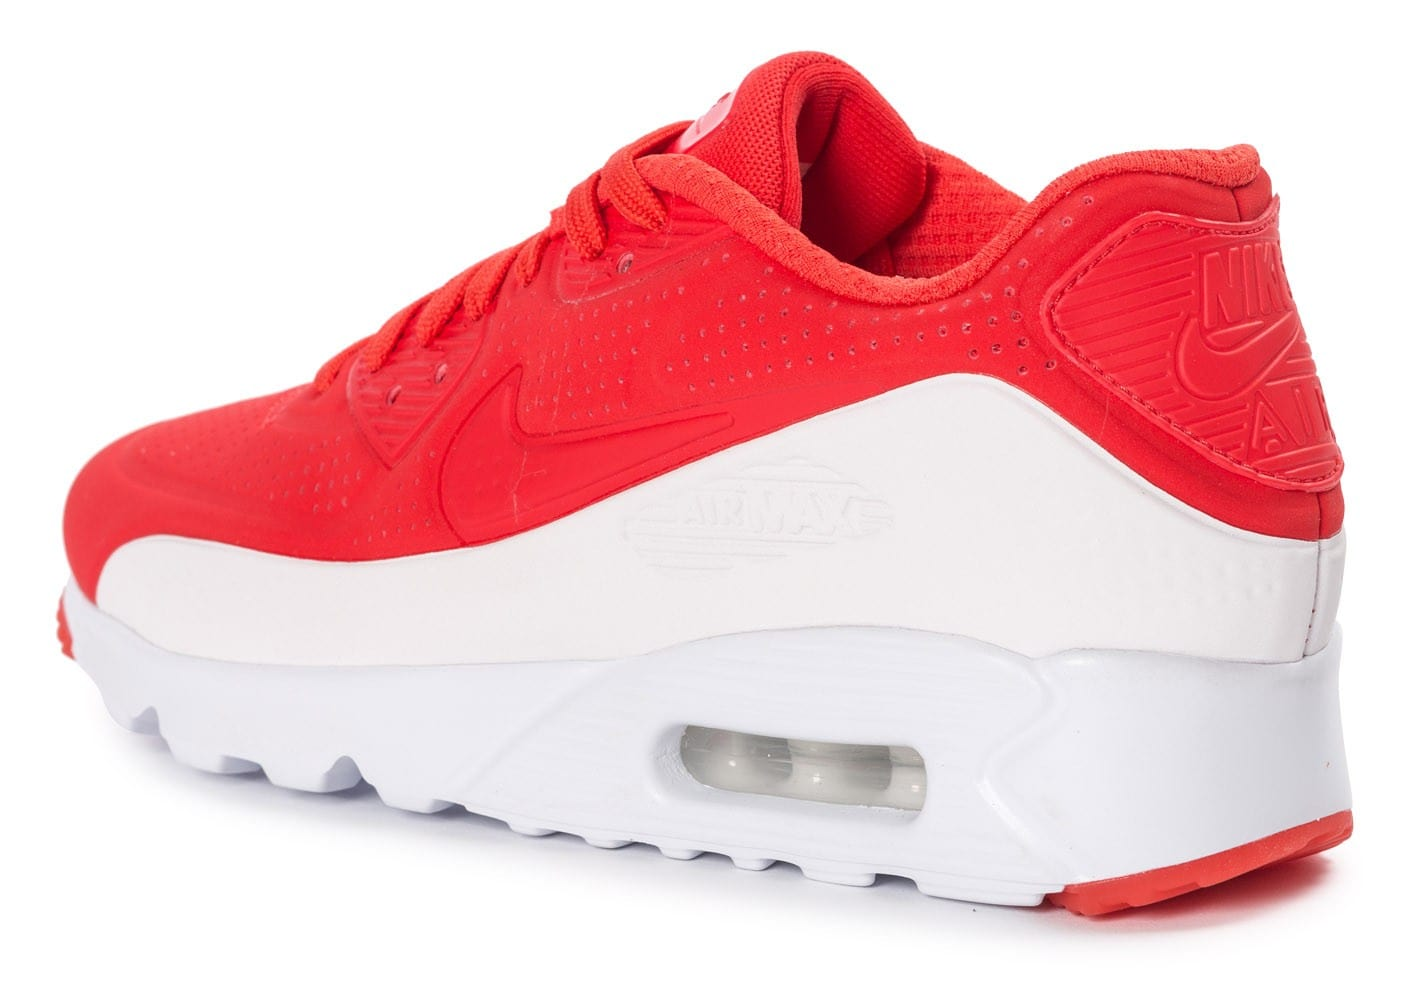 Baskets basses Nike Sportswear Air Max 90 Ultra Moire